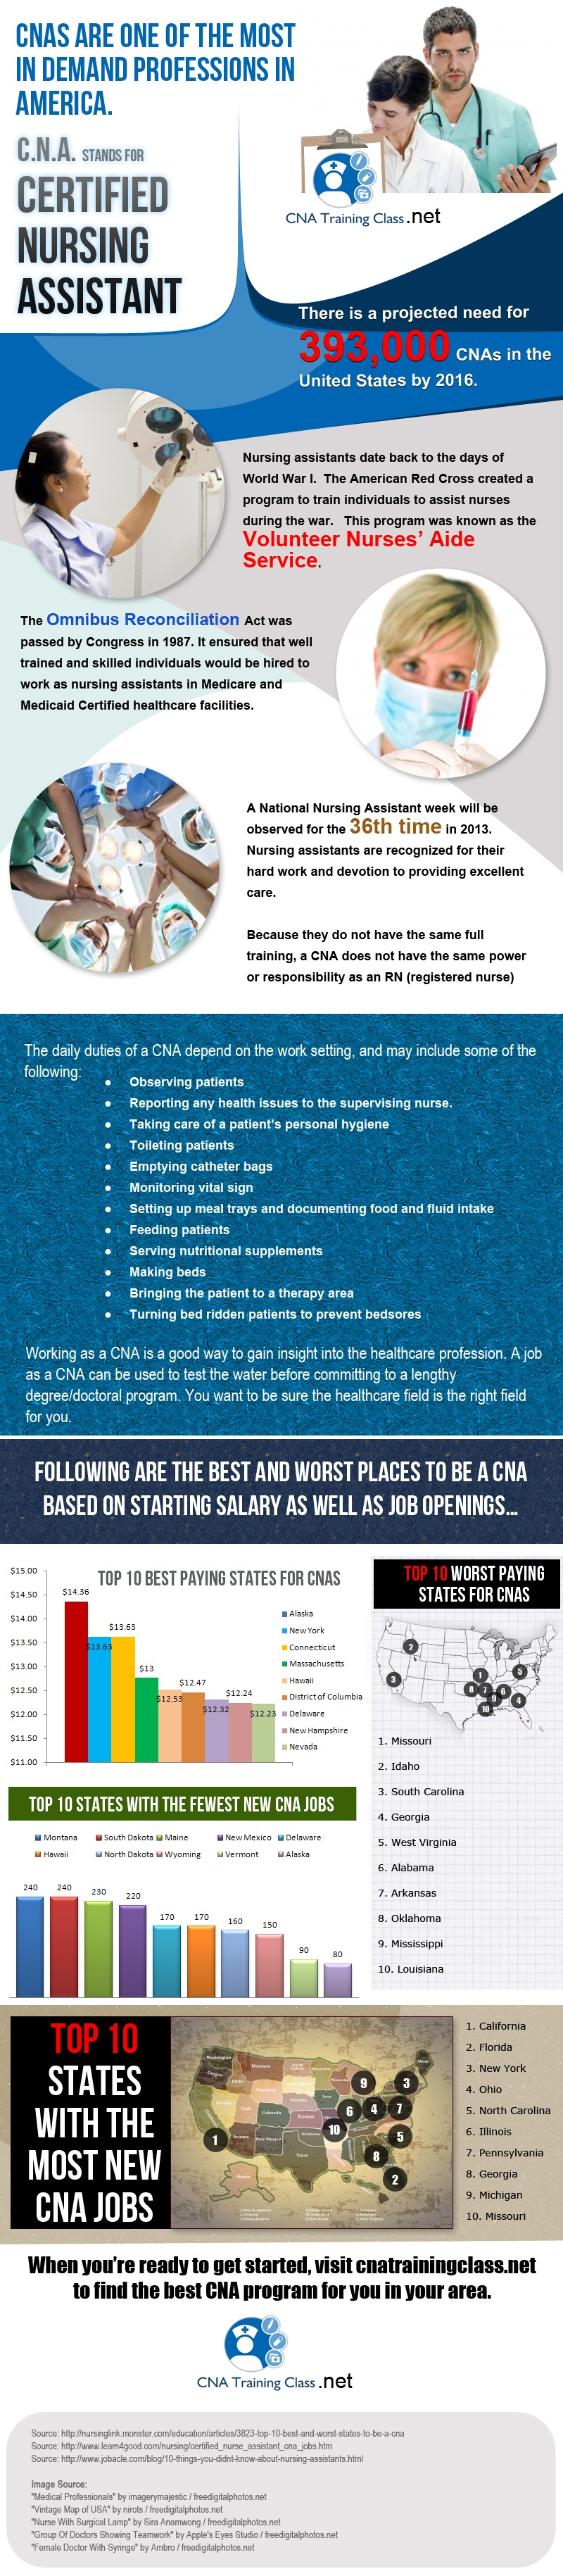 The anatomy of a cna i can actually relate to this one nurse the anatomy of a cna i can actually relate to this one nurse life pinterest anatomy humor and medical 1betcityfo Image collections